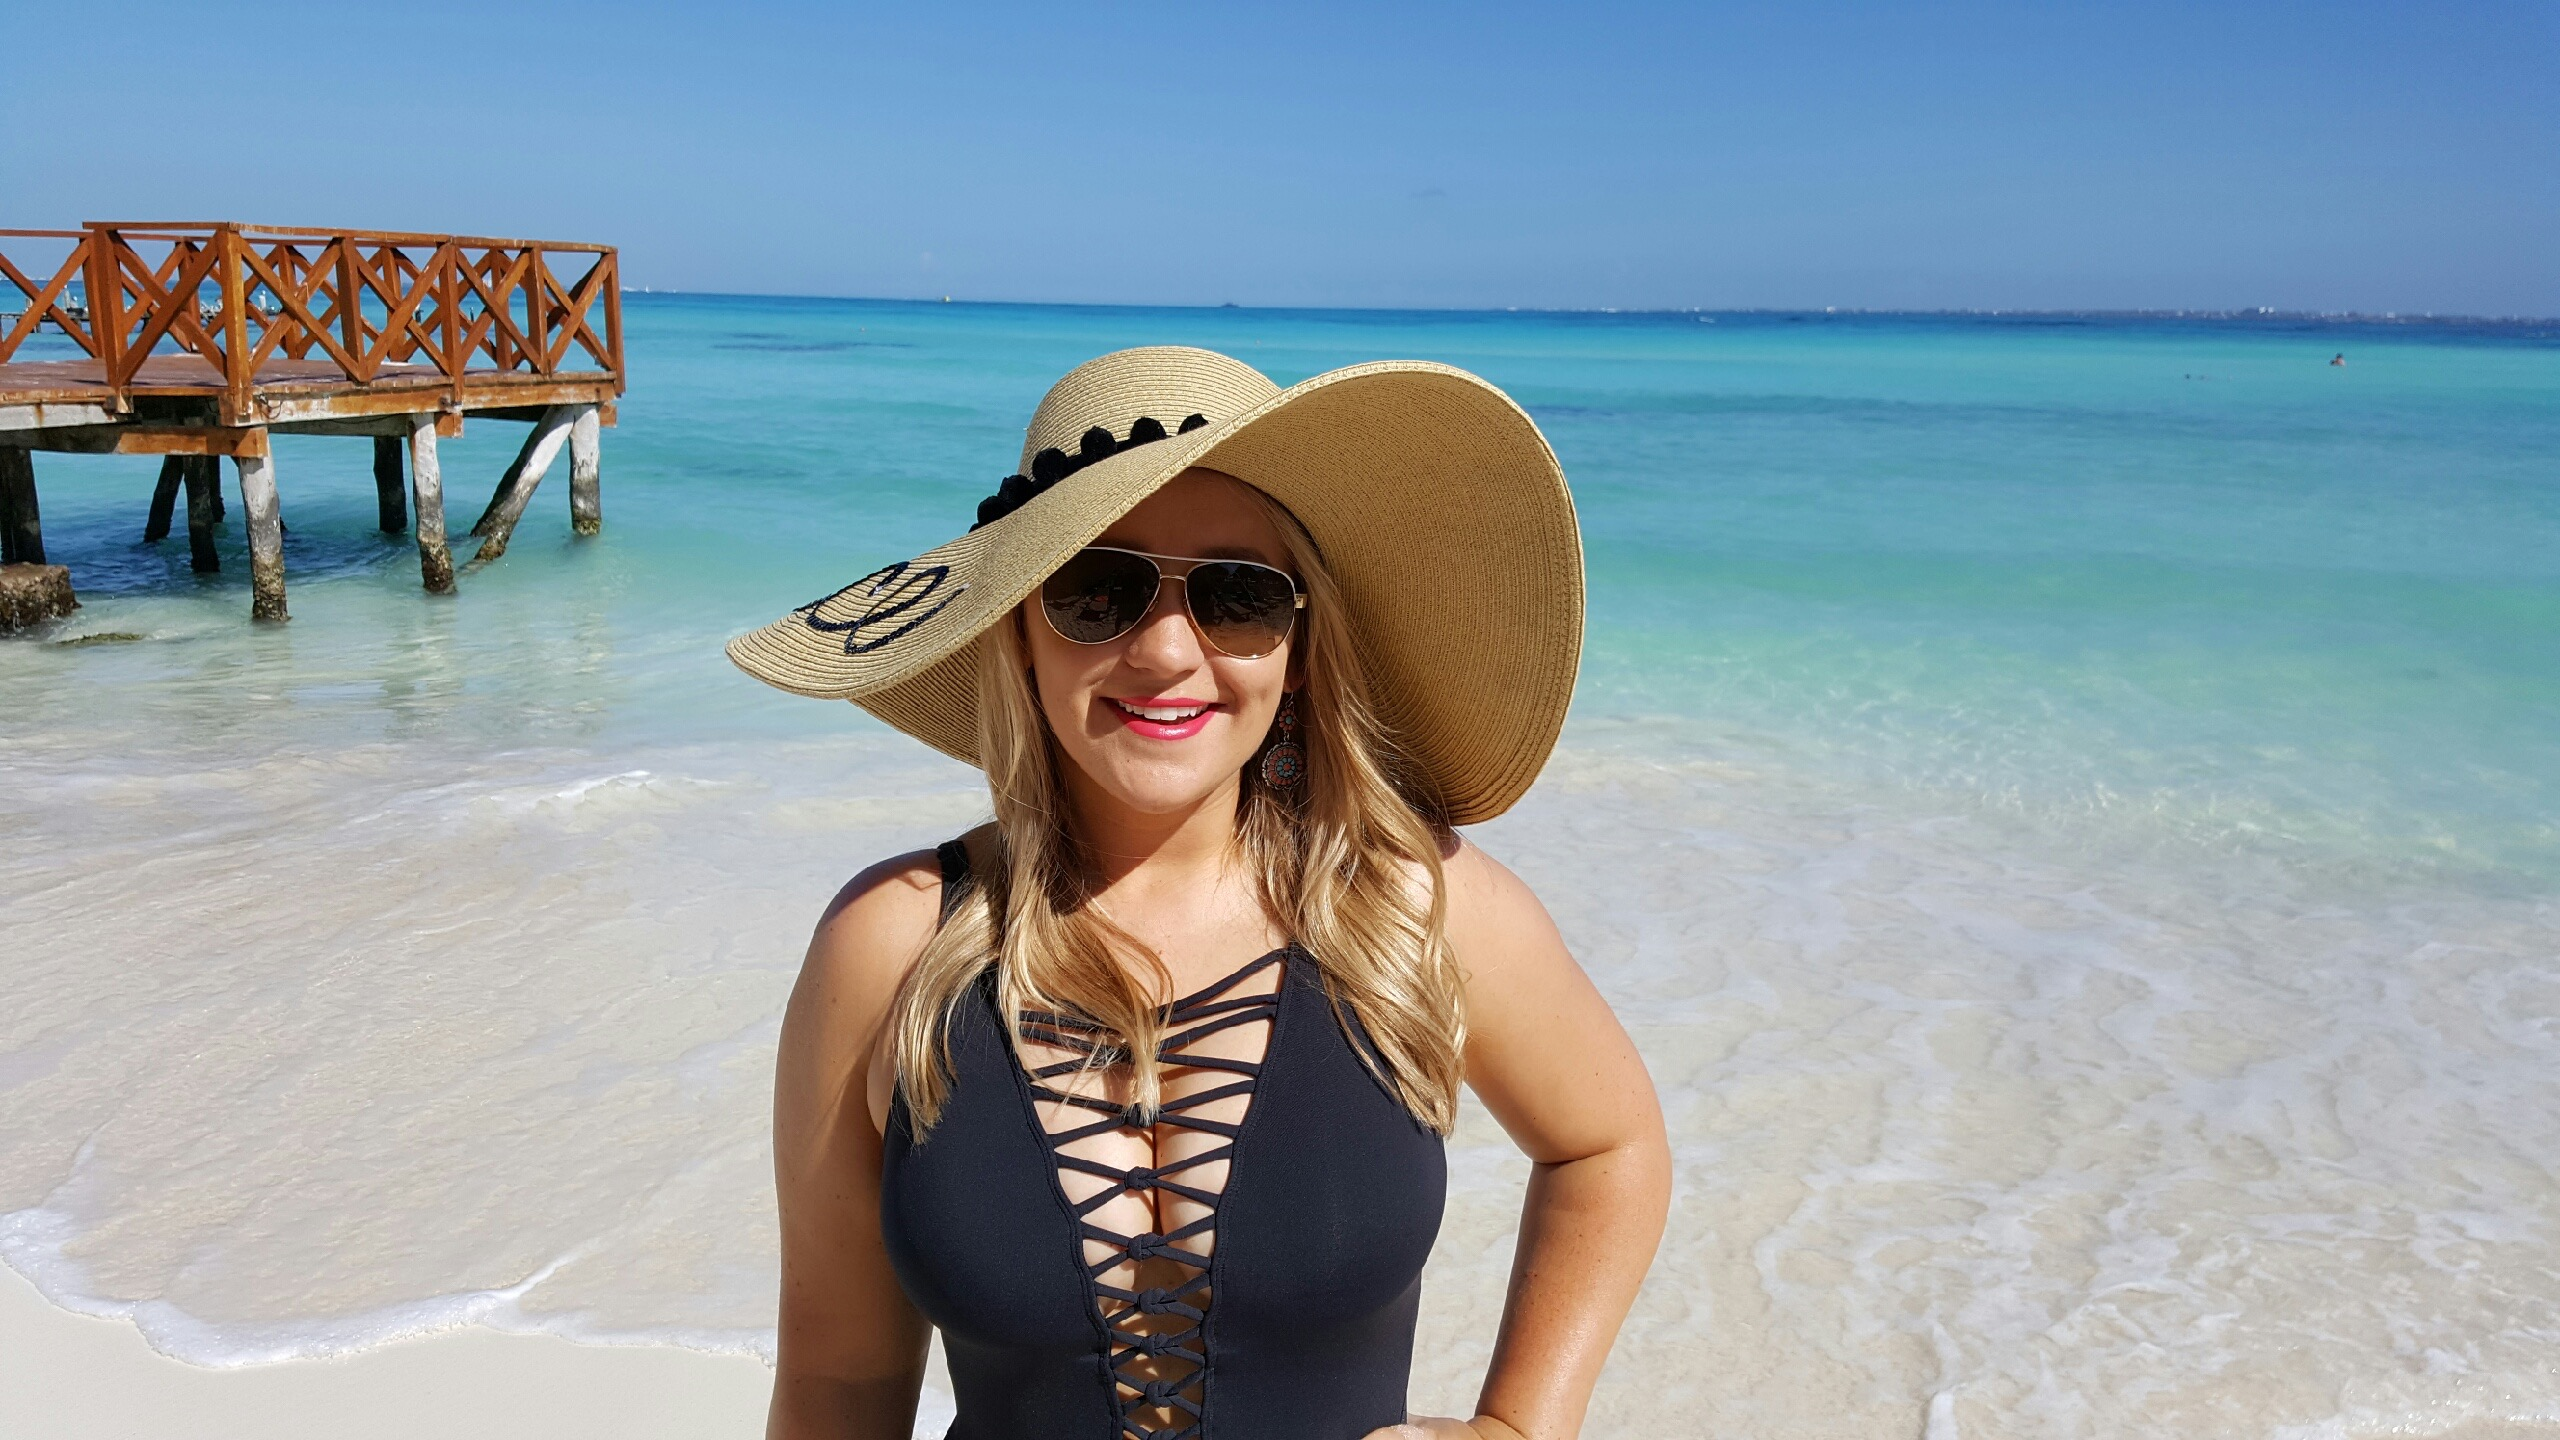 Hyatt Ziva Cancun Review #Cancun #Hyatt #AllInclusive #HyattZiva